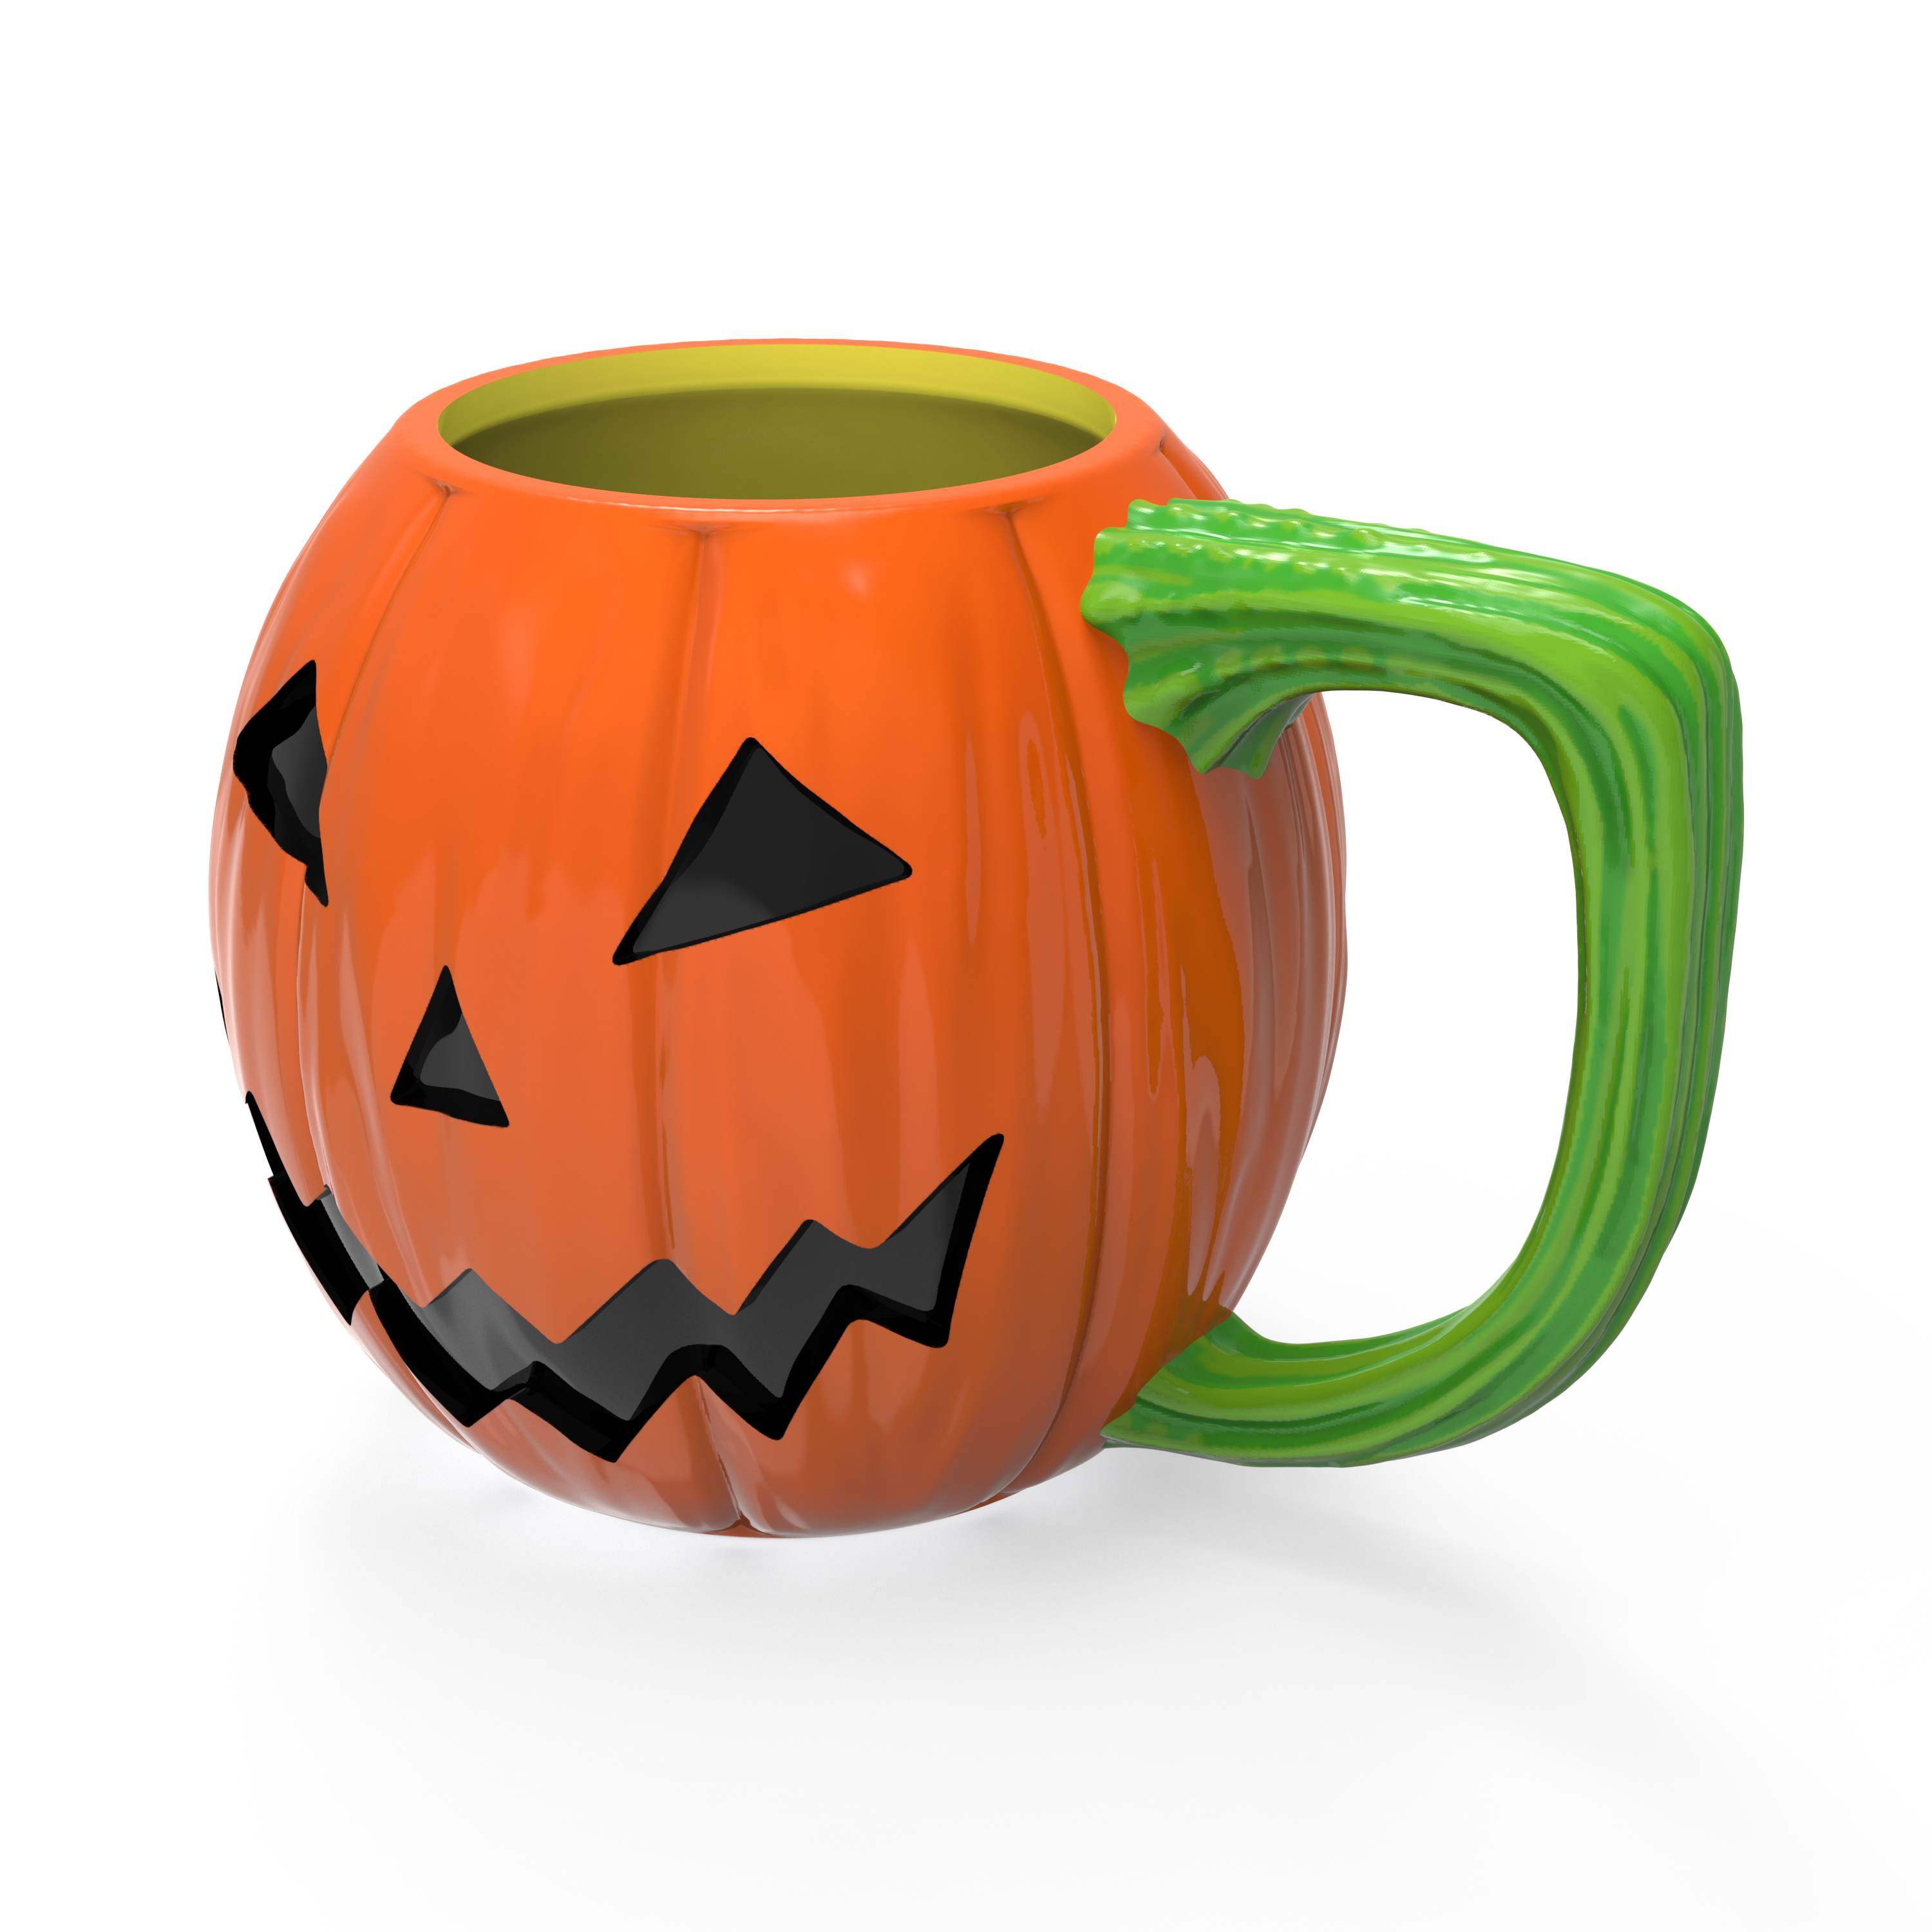 Halloween 15 ounce Coffee Mug and Spoon, Jack O' Lantern slideshow image 4